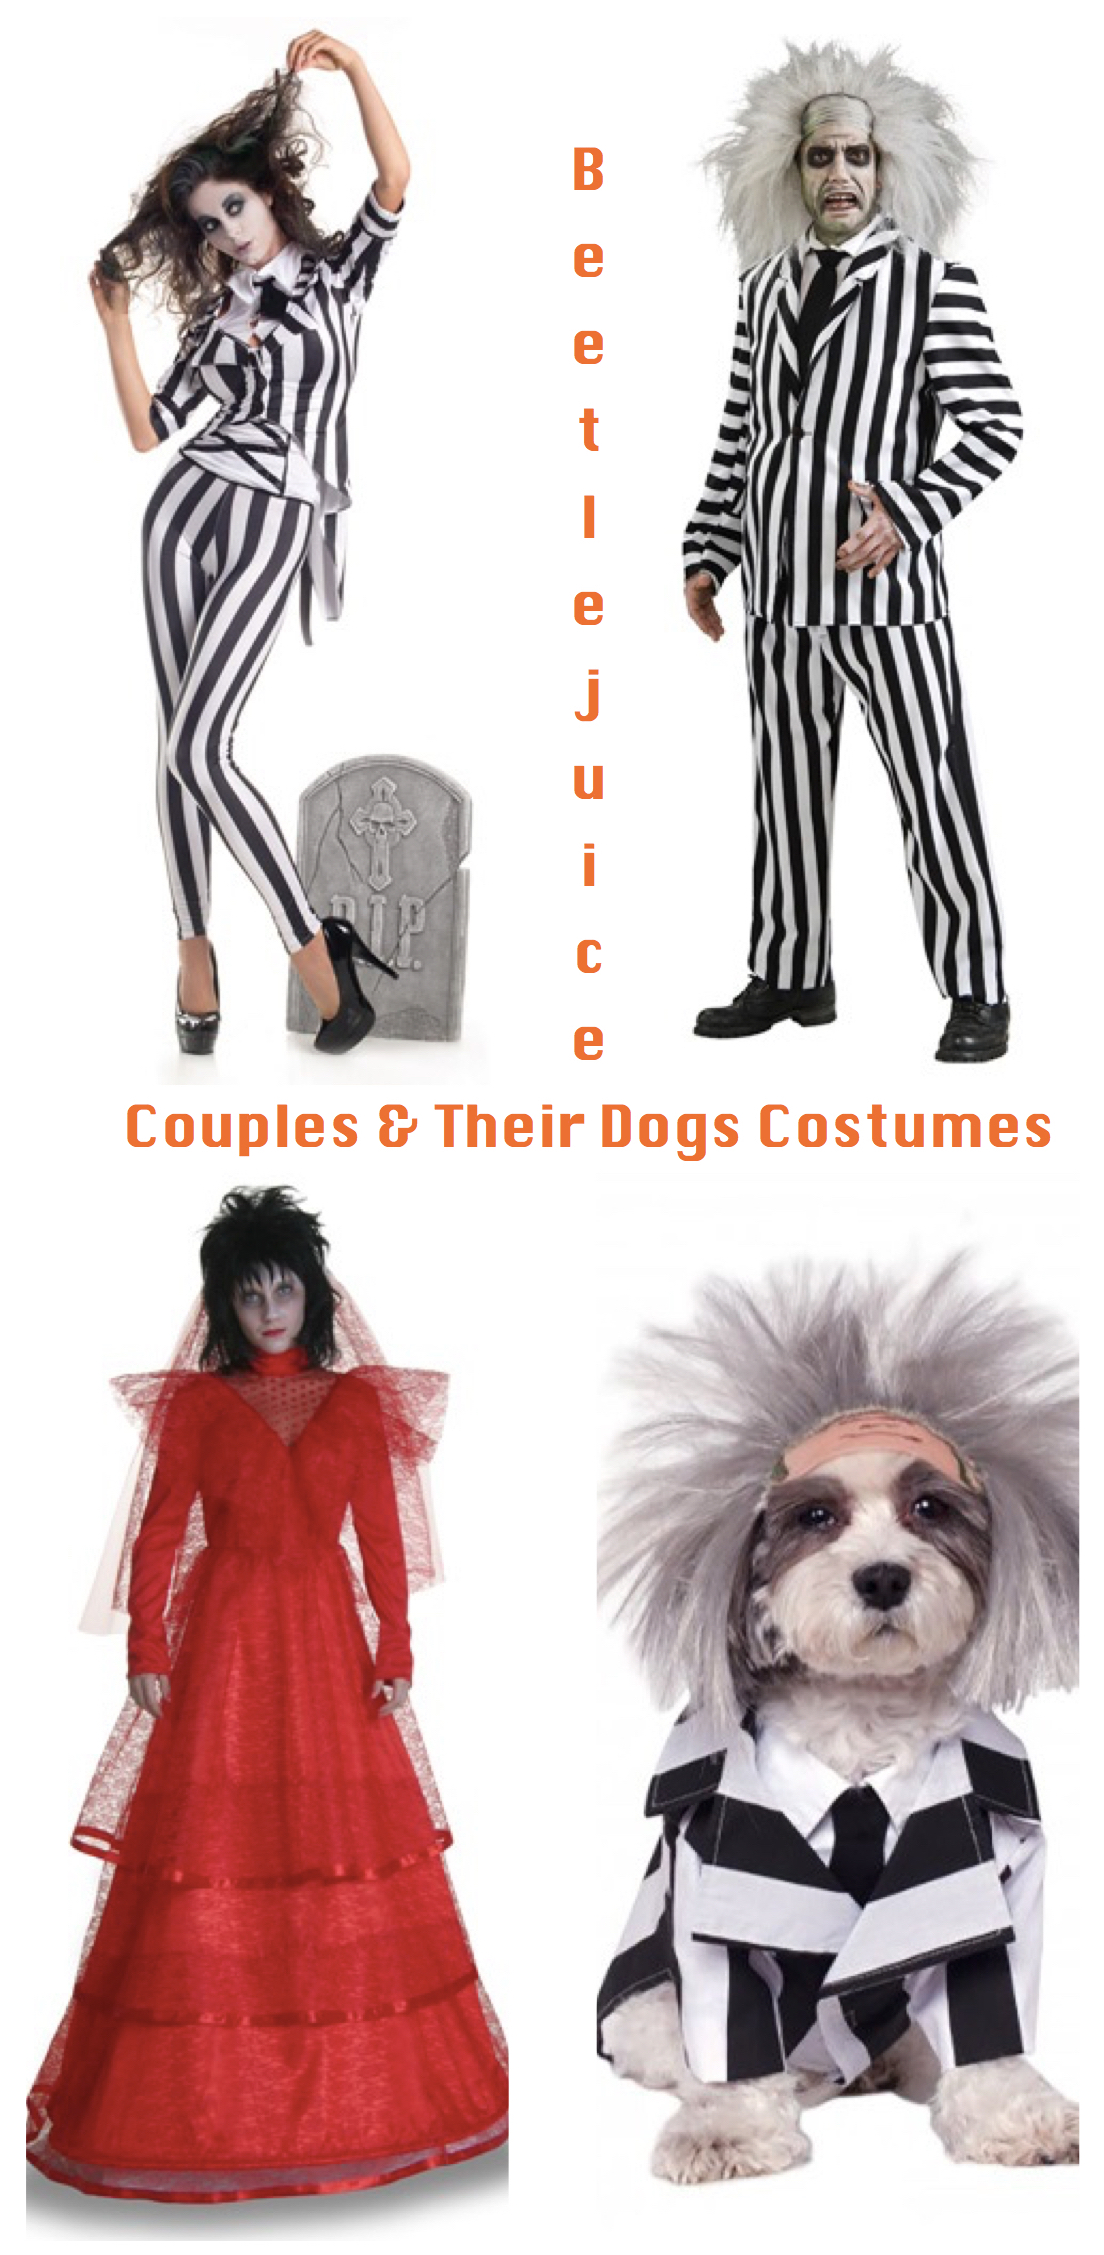 beetlejuice couple halloween costumes ✓ halloween costumes